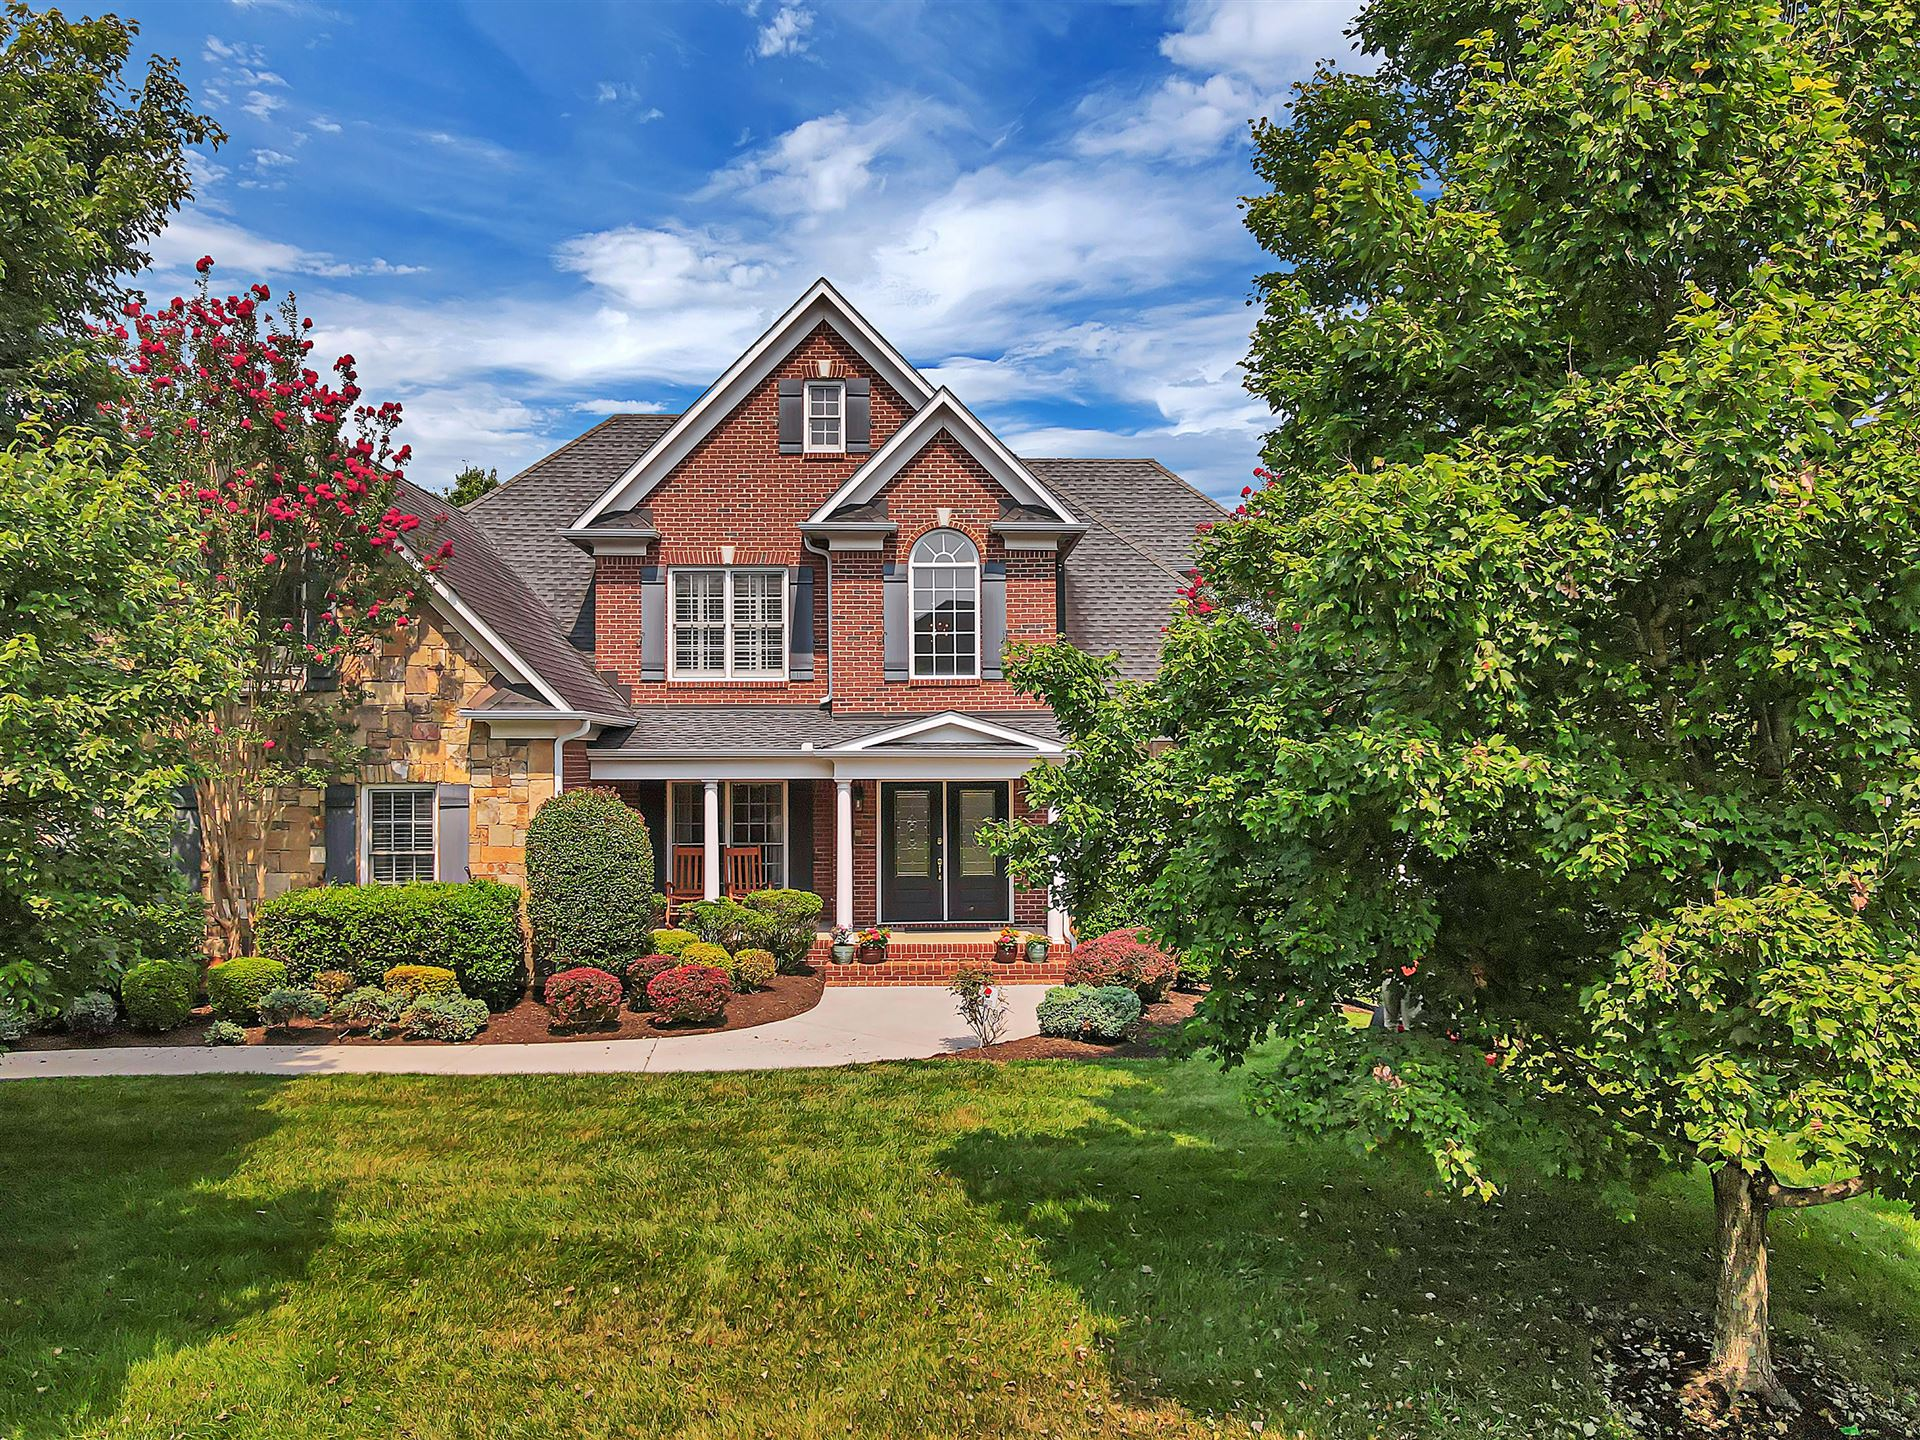 Photo of 8823 Steeplechase Drive, Knoxville, TN 37922 (MLS # 1162245)